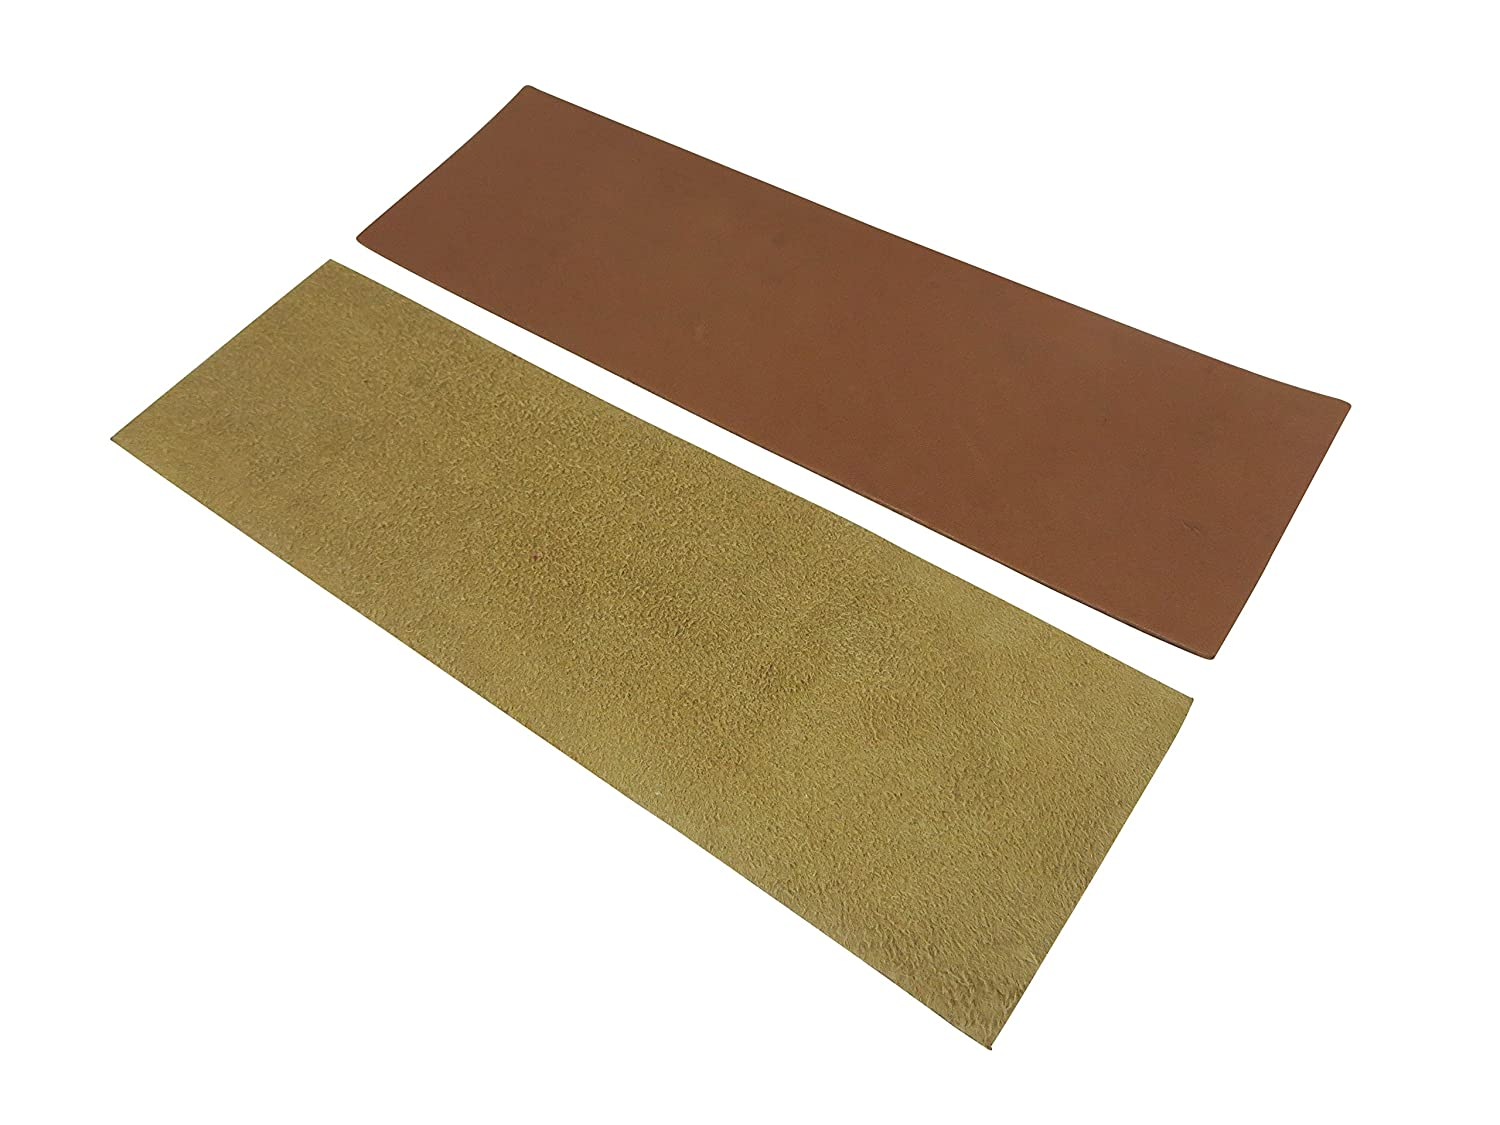 Taytools 469638 2 Piece French Leather Strop Kit for Custom Strops Suede and Smooth Pieces 3 x 10 Each Taylor Toolworks